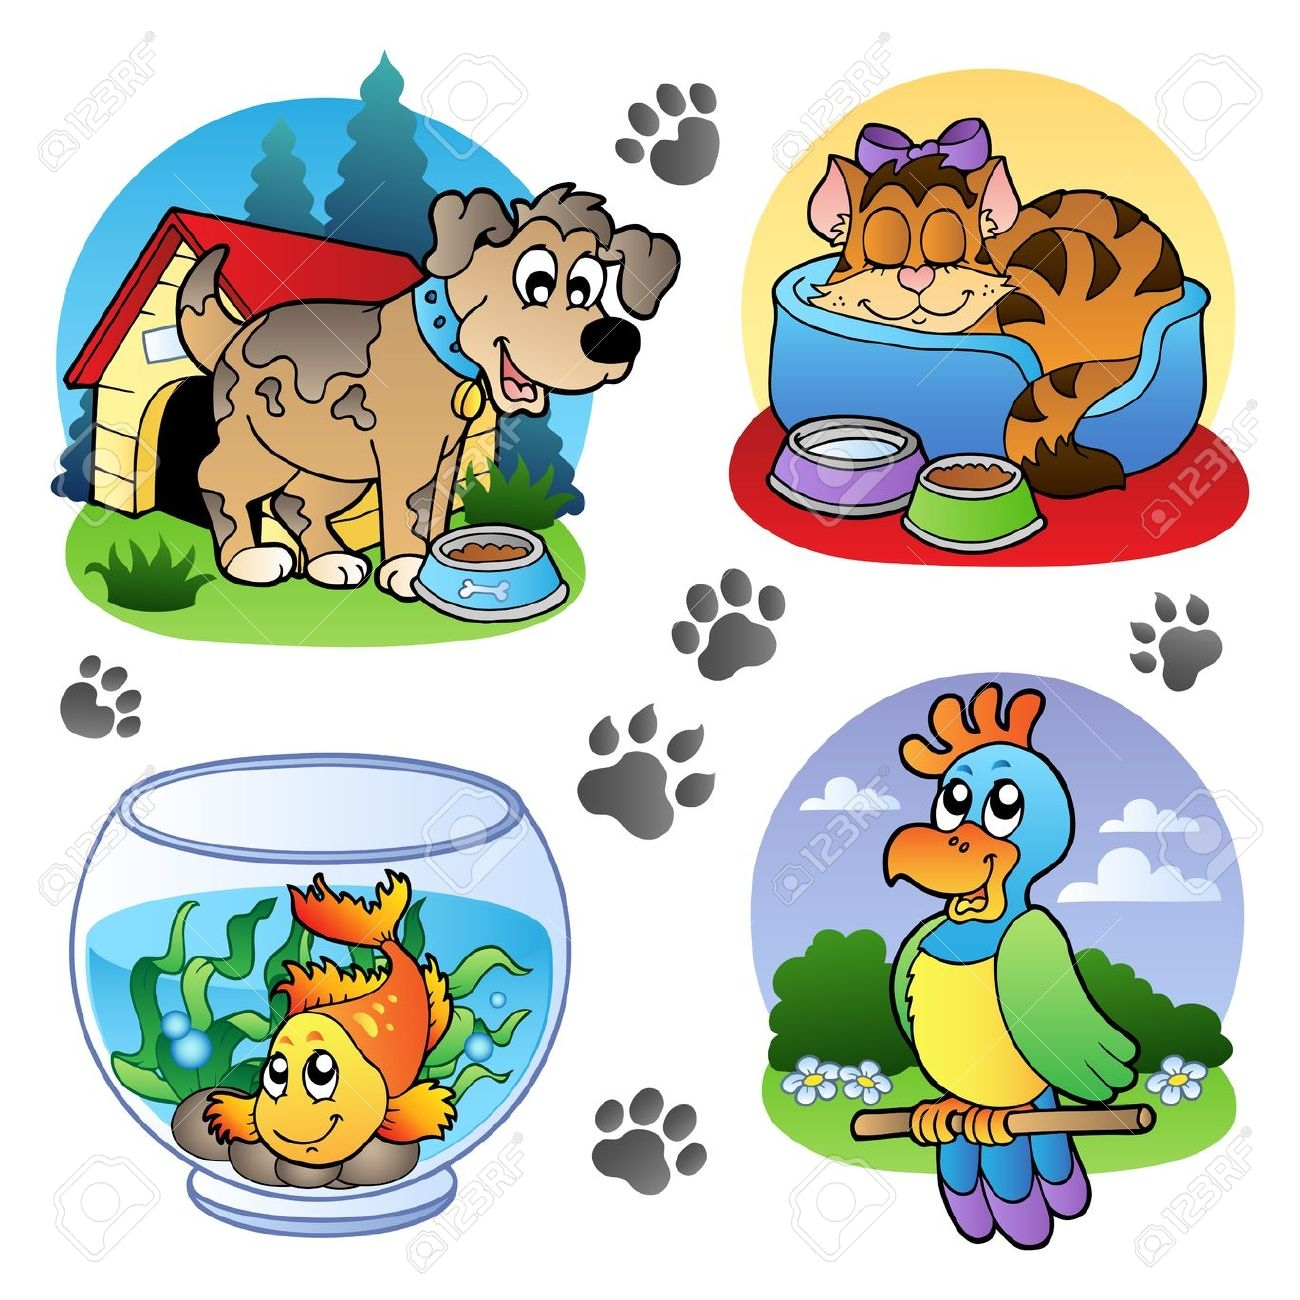 Pet Bowl: Various Pets Images-pet bowl: Various pets images-11